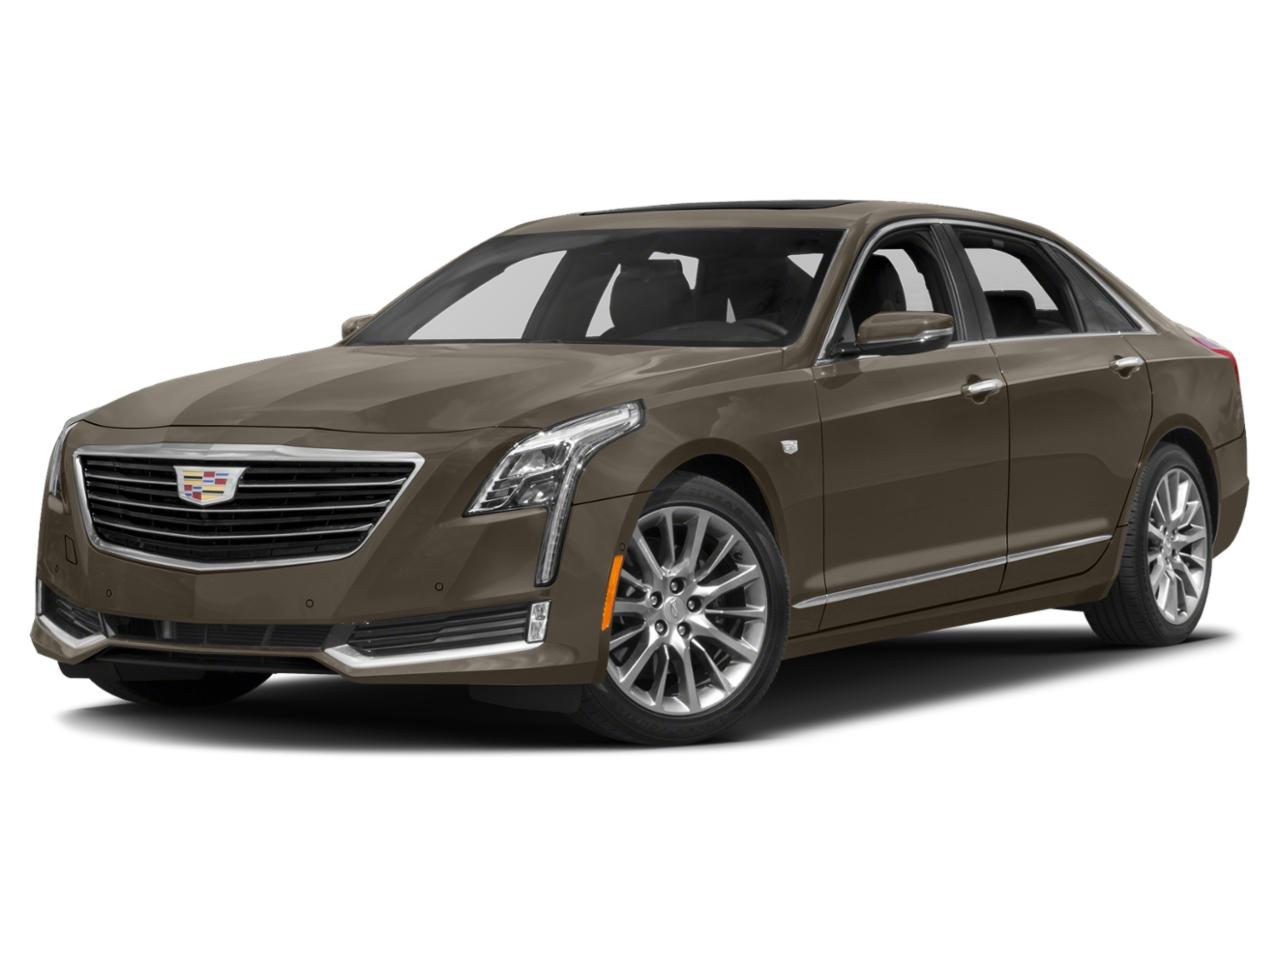 2018 Cadillac CT6 Vehicle Photo in Corsicana, TX 75110